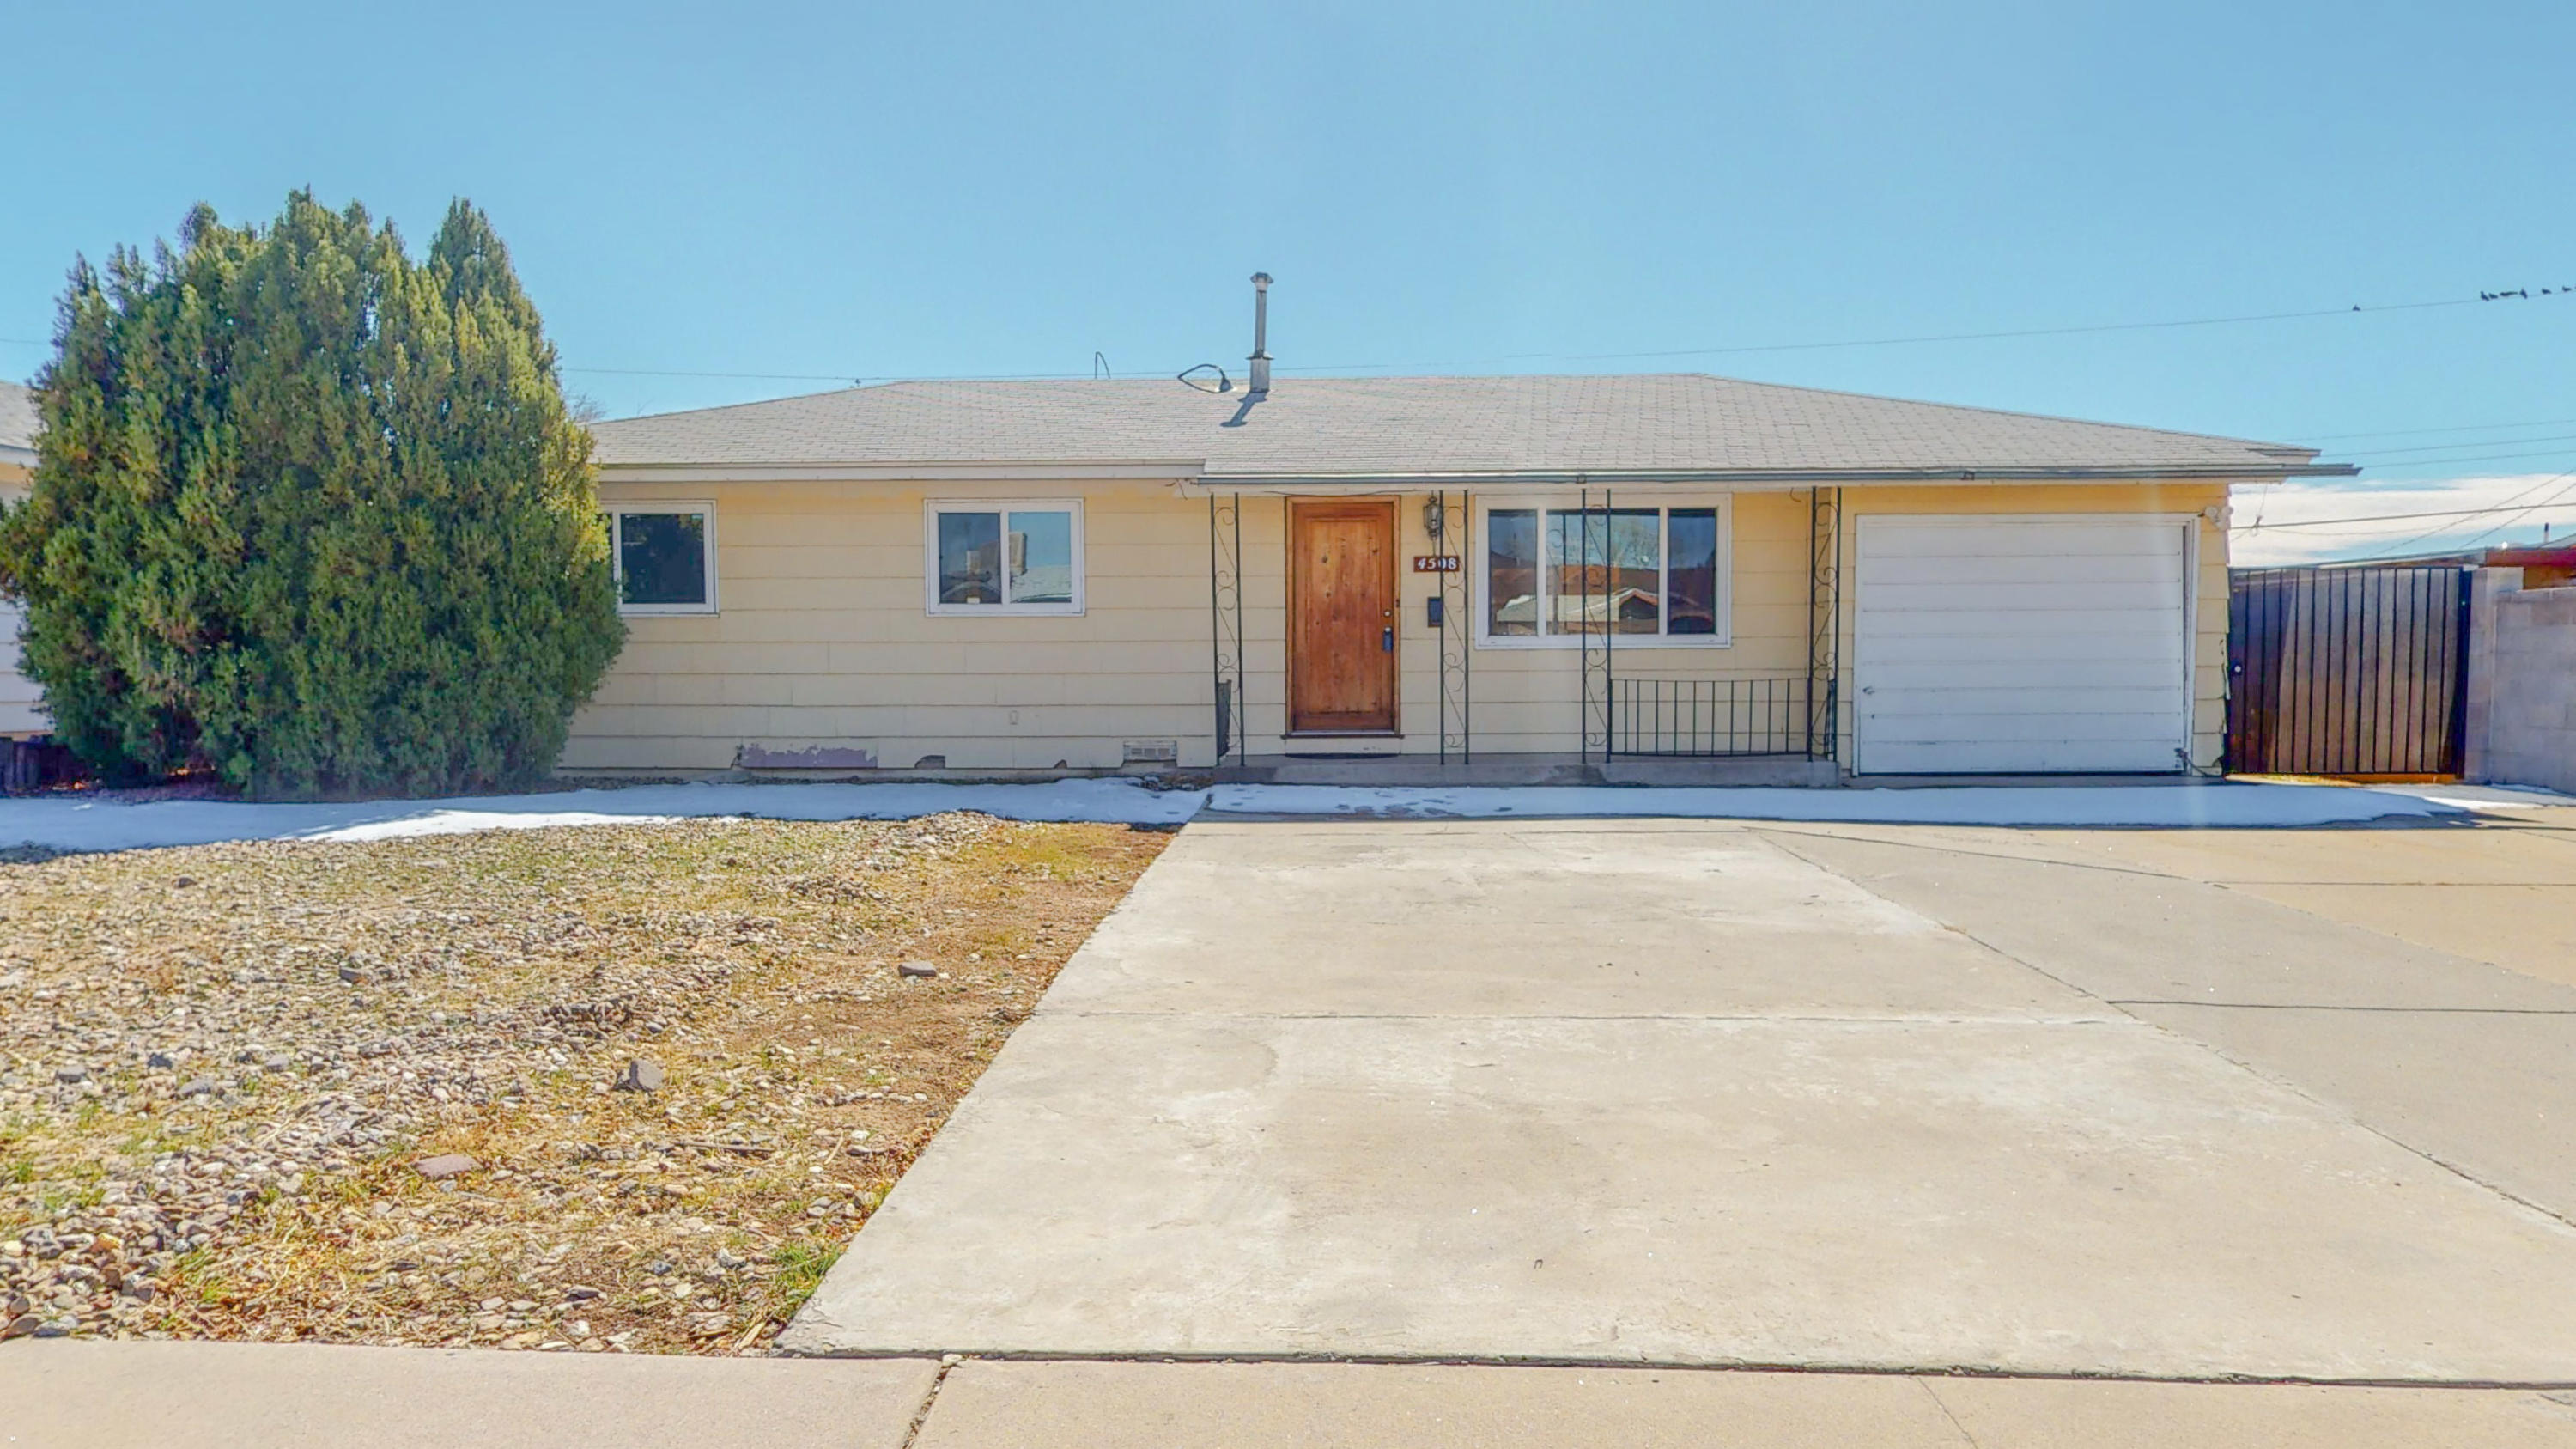 You must see this wonderful 1959 Mid-Century 4bd home in a stellar location!! Just freshened up with new paint, updated bathrooms and kitchen. Large front yard with plenty of parking space followed by a generous patio space and paths to several romantic seating areas that are private and serene. This is a must see!!